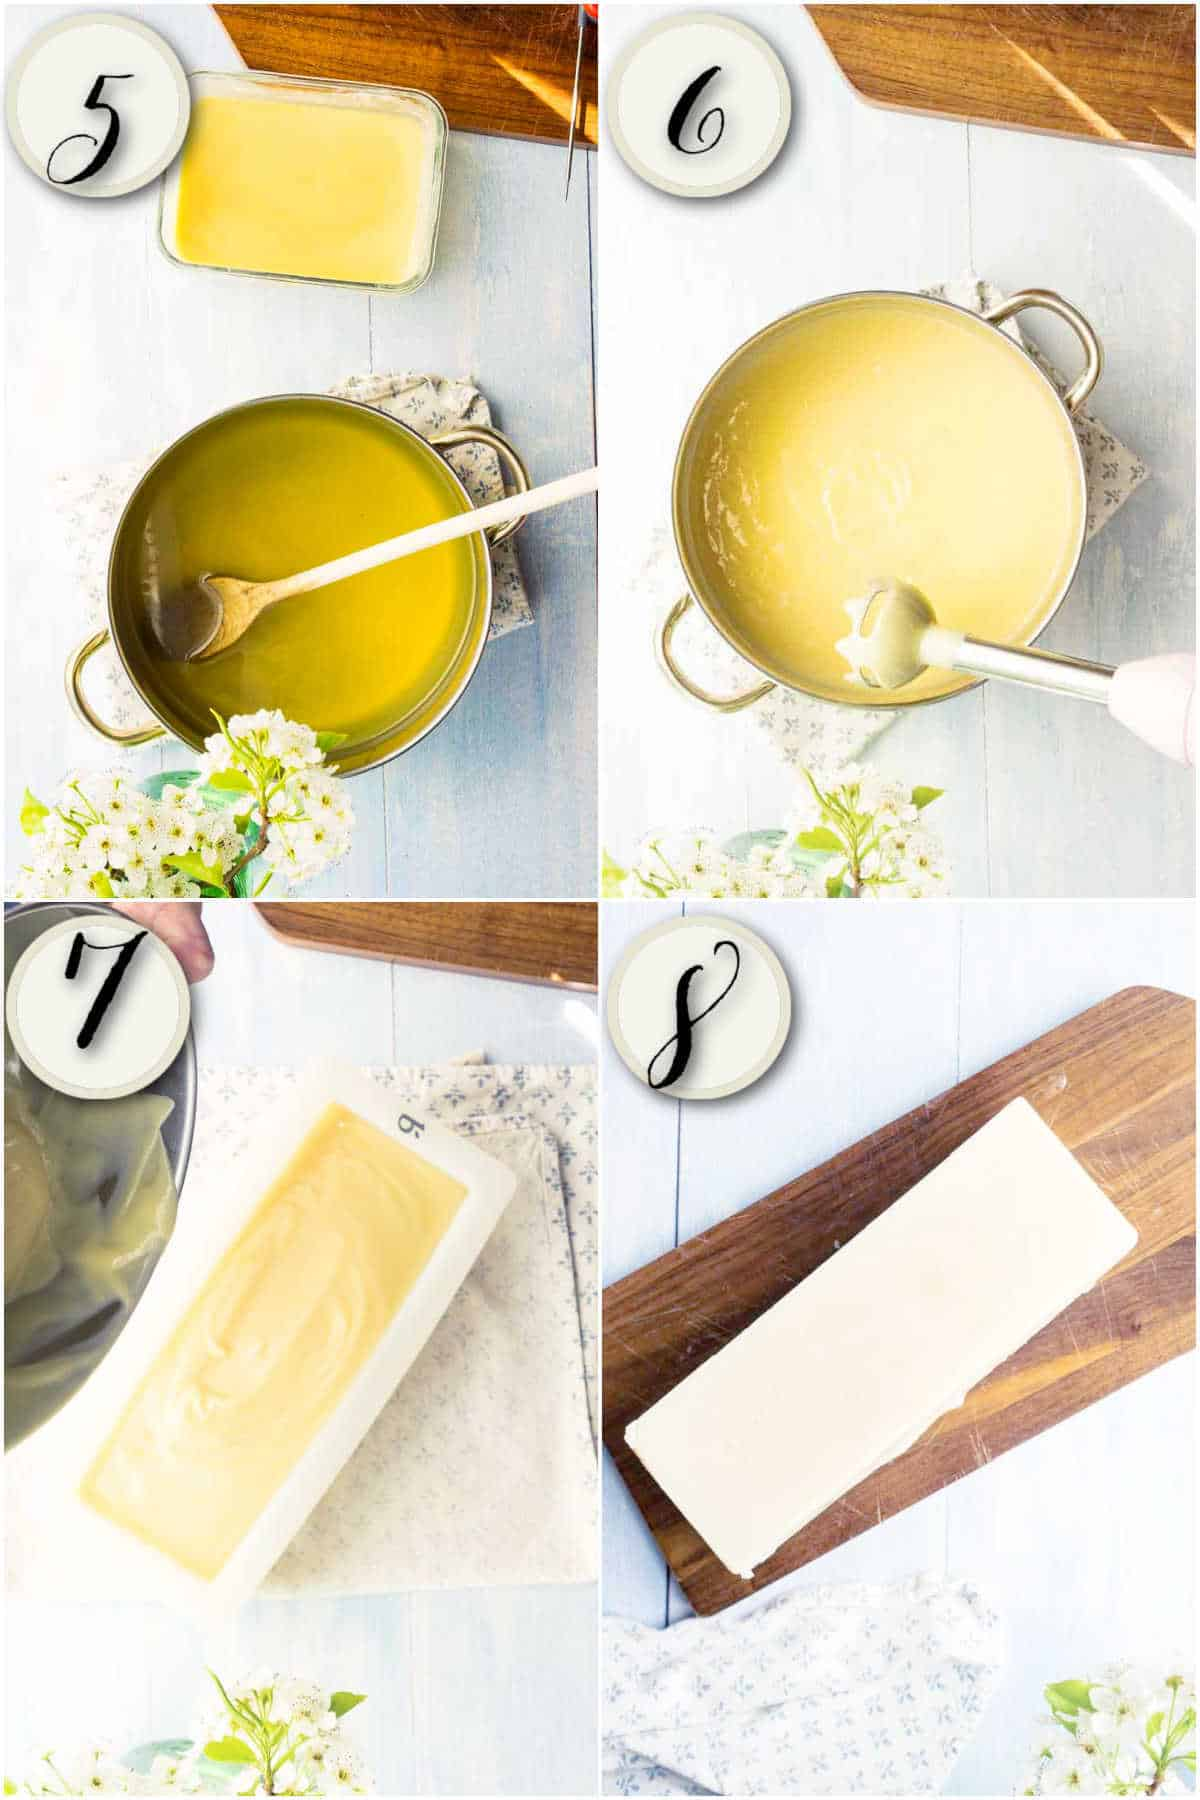 grid of 4 images: melted oil in pot, stick blender mixing, soap batter being poured into mold, unmolded white loaf of soap